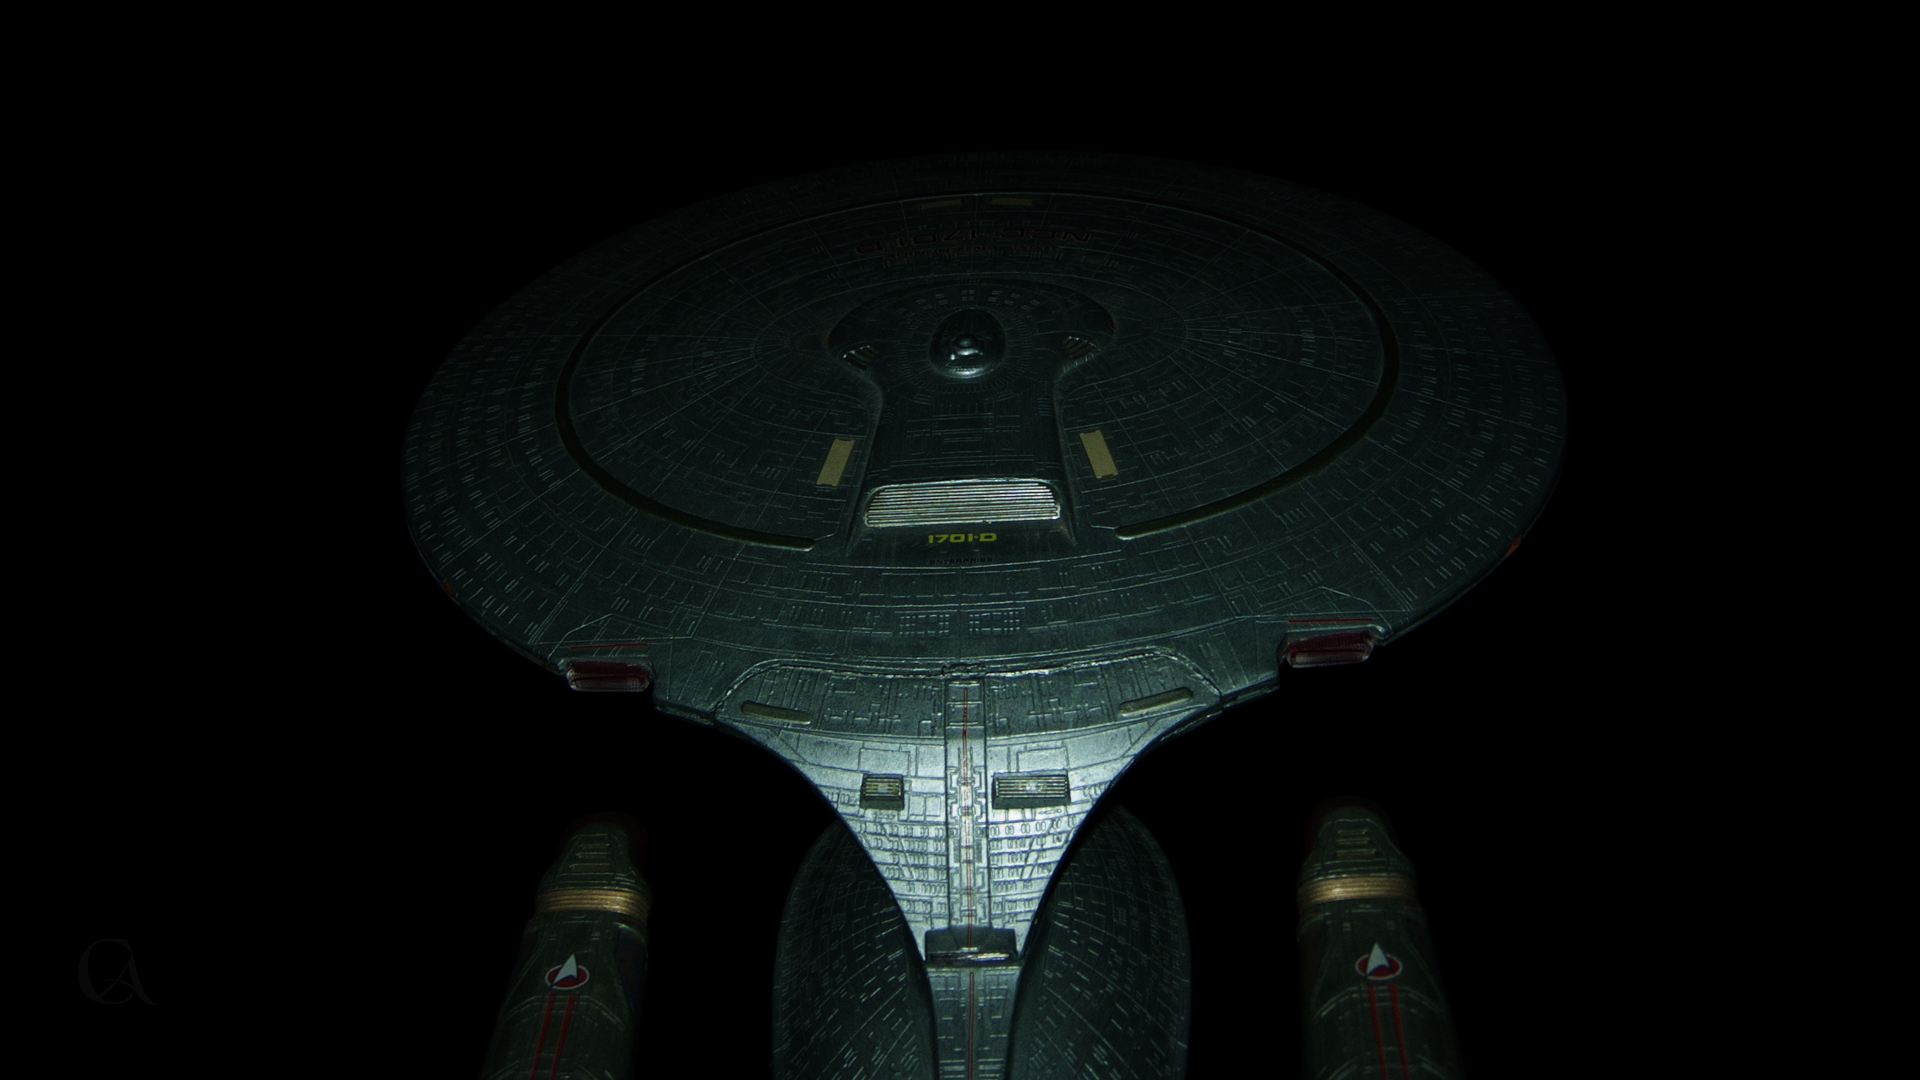 NCC-1701-D rear saucer view wallpaper 1920x1080 no.253